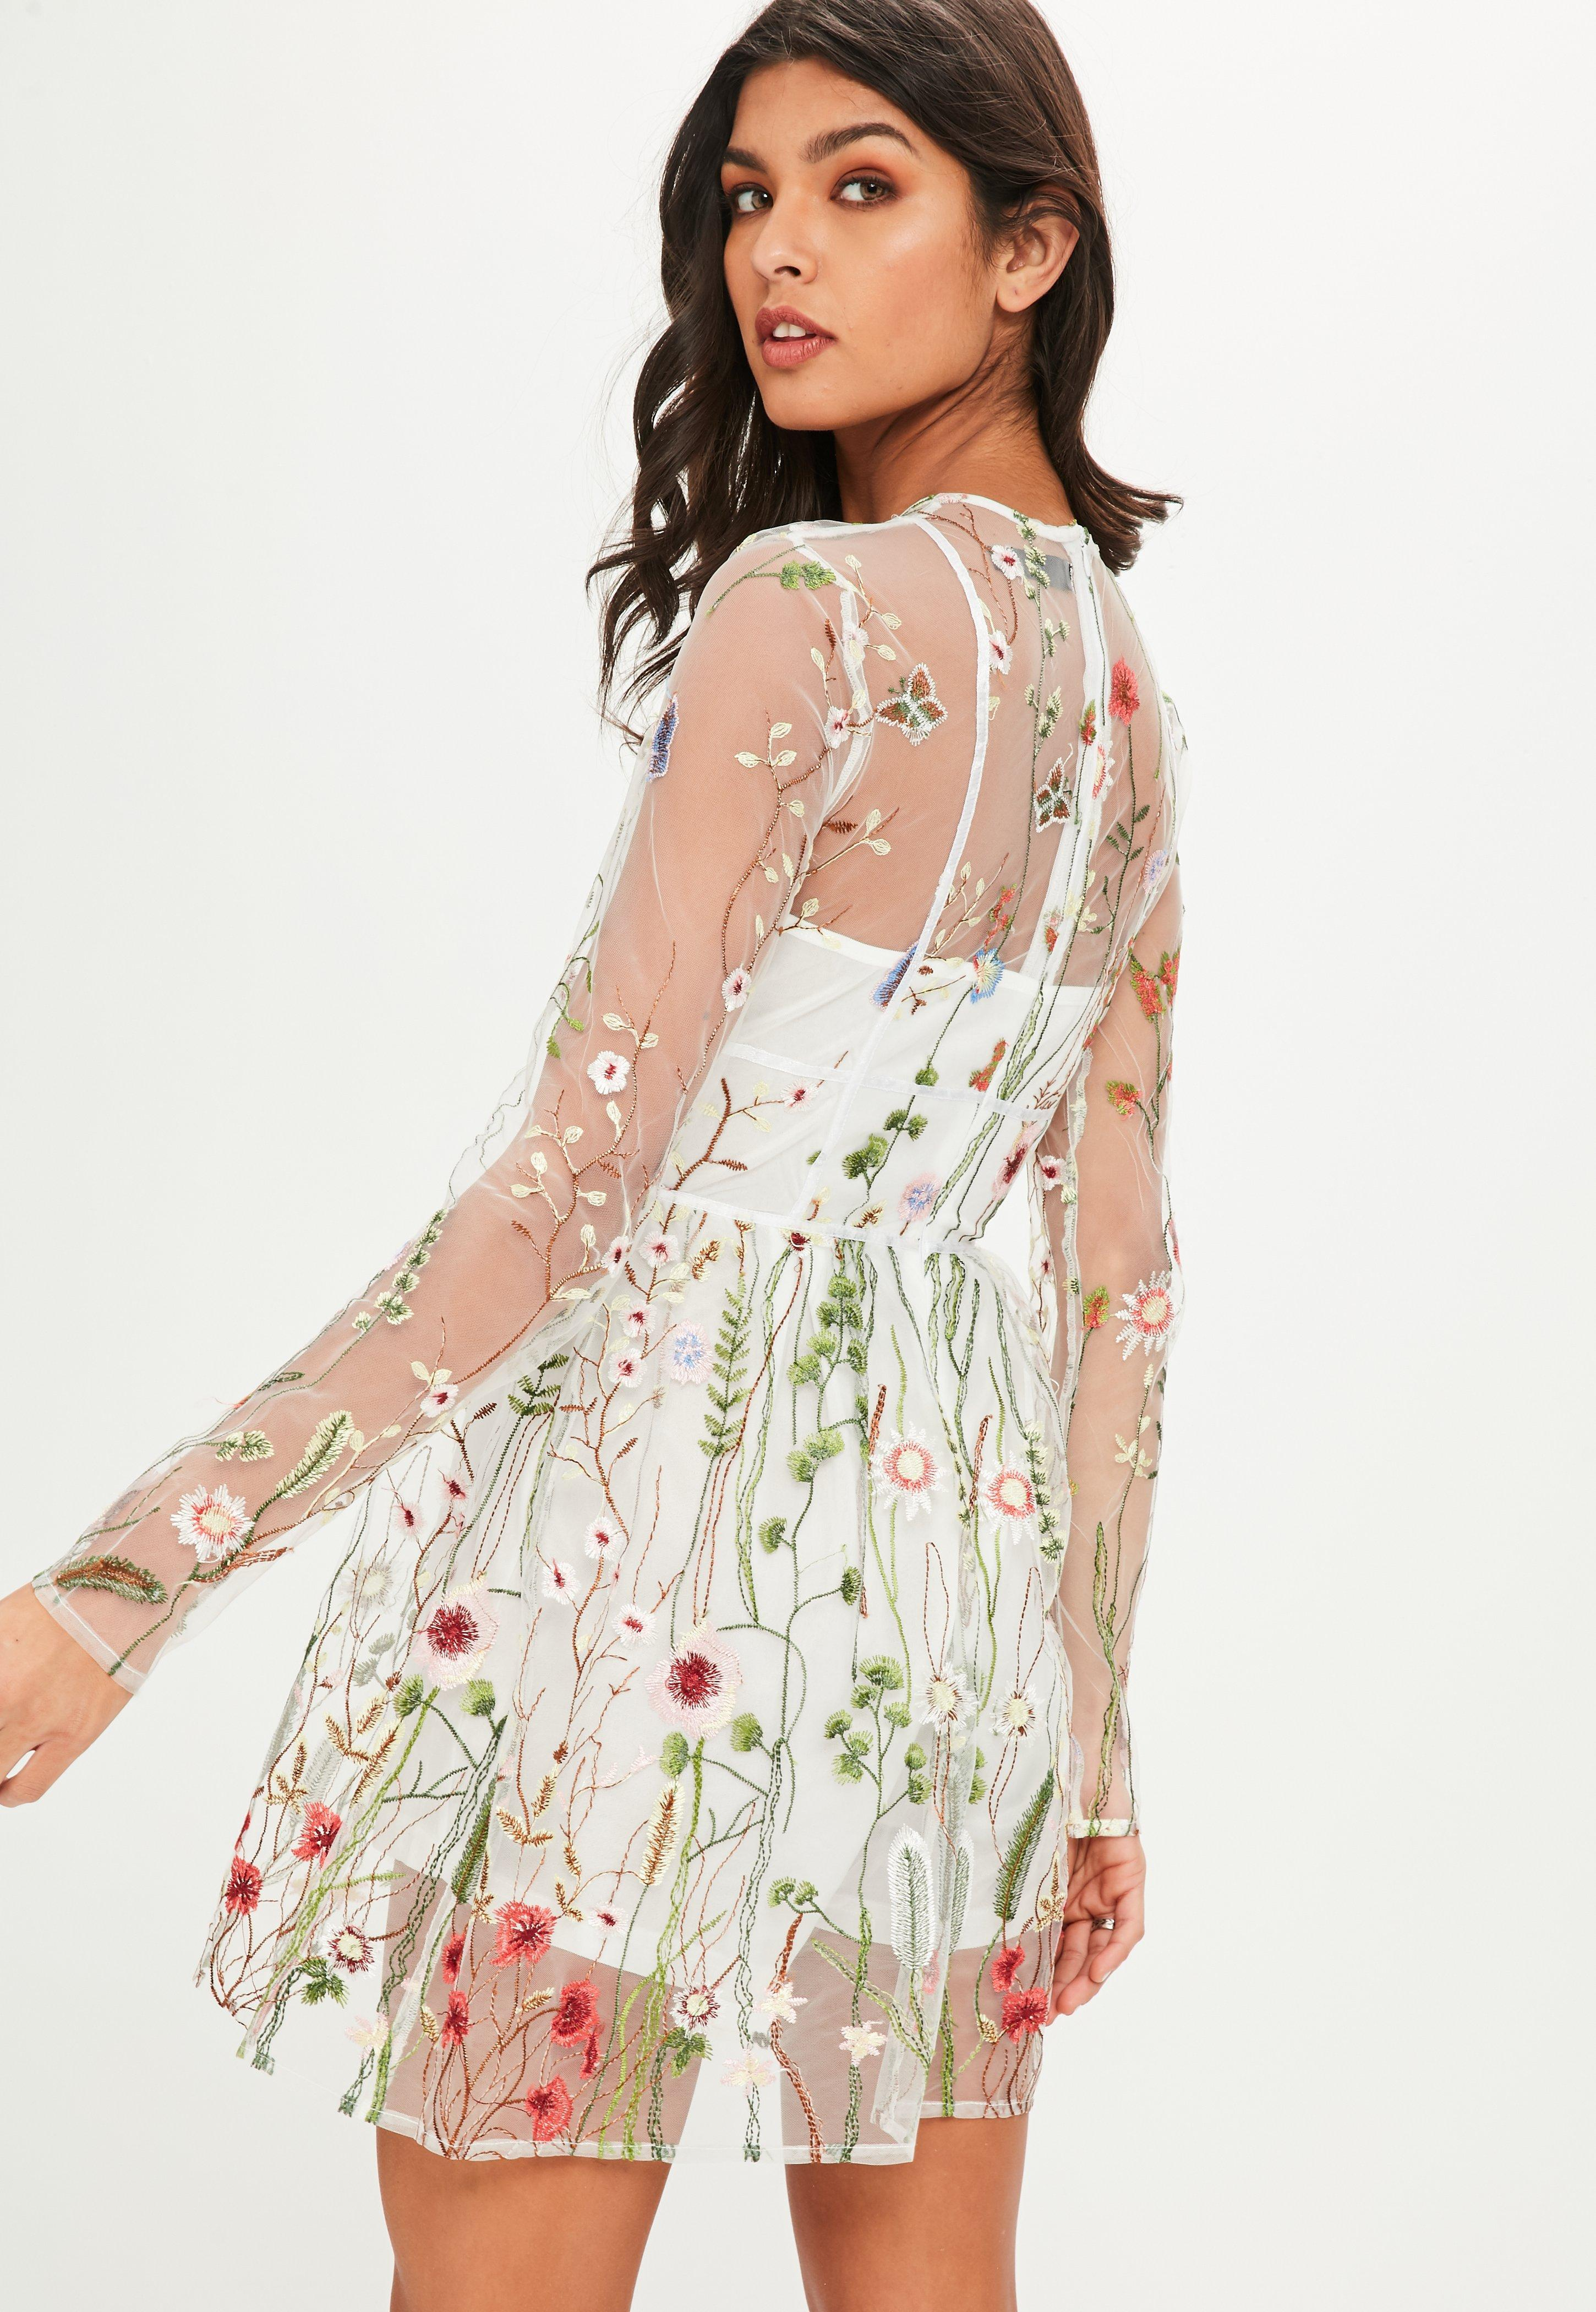 Lyst - Missguided White Floral Mesh Skater Dress in White 3eae7aaa1